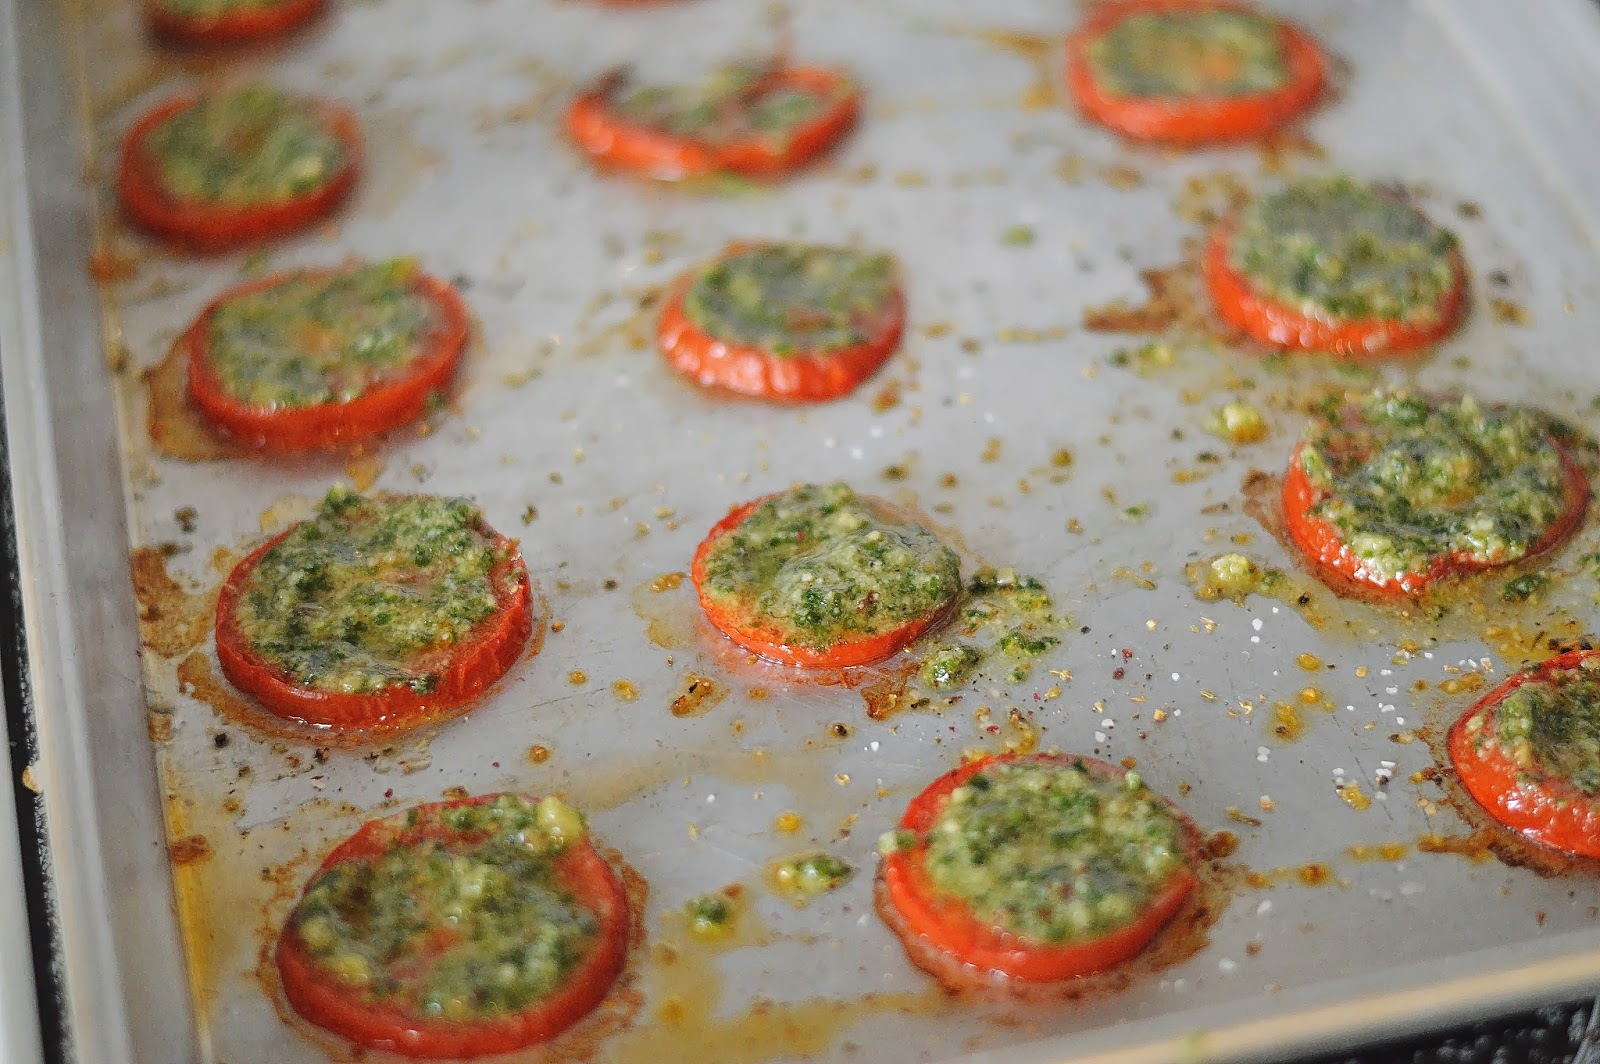 Roasted Tomatoes Ina Garten the art of comfort baking: parmesan pesto roasted tomatoes